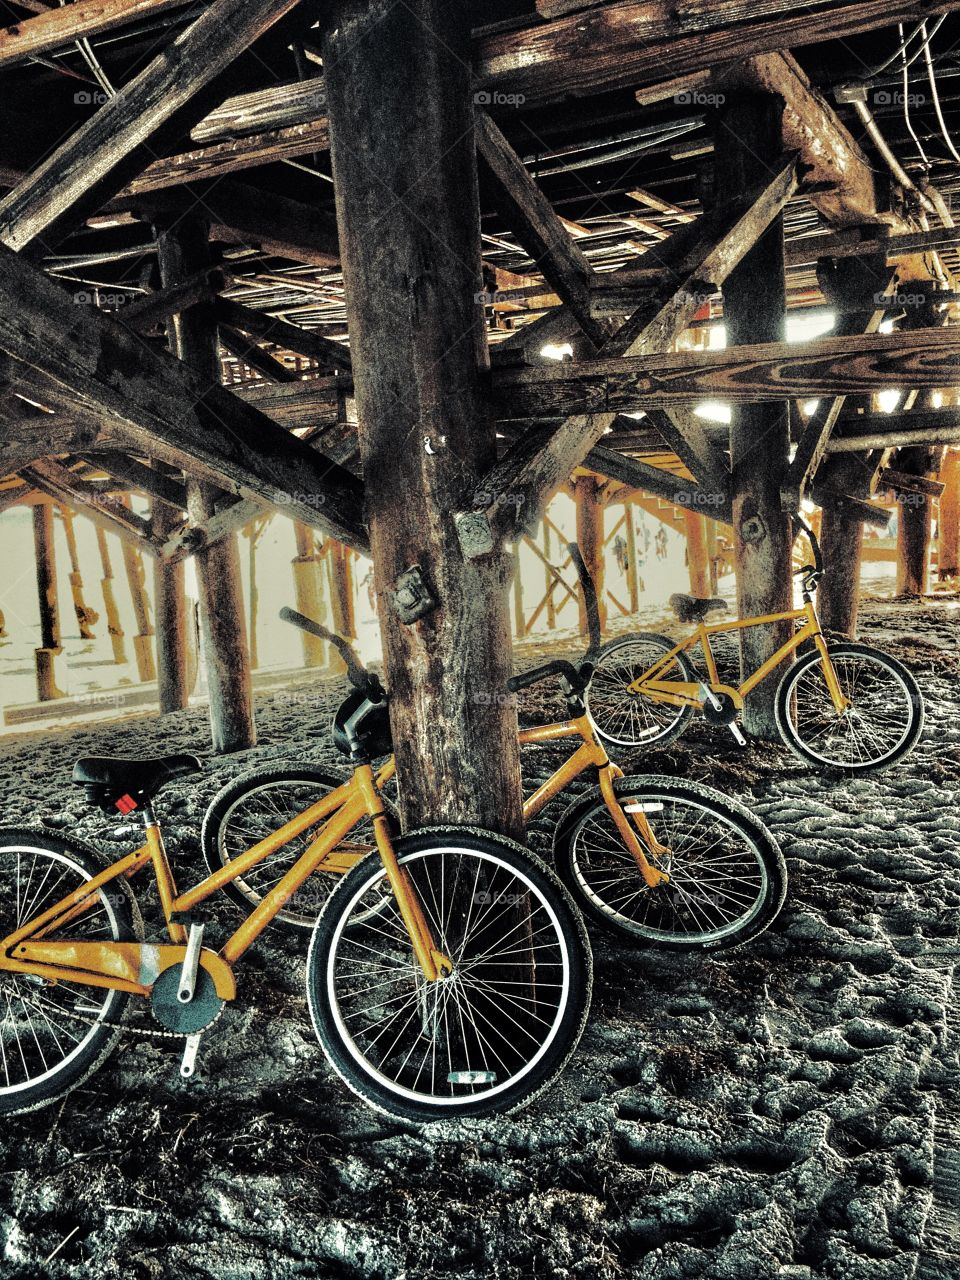 Bicycles parked under the bridge